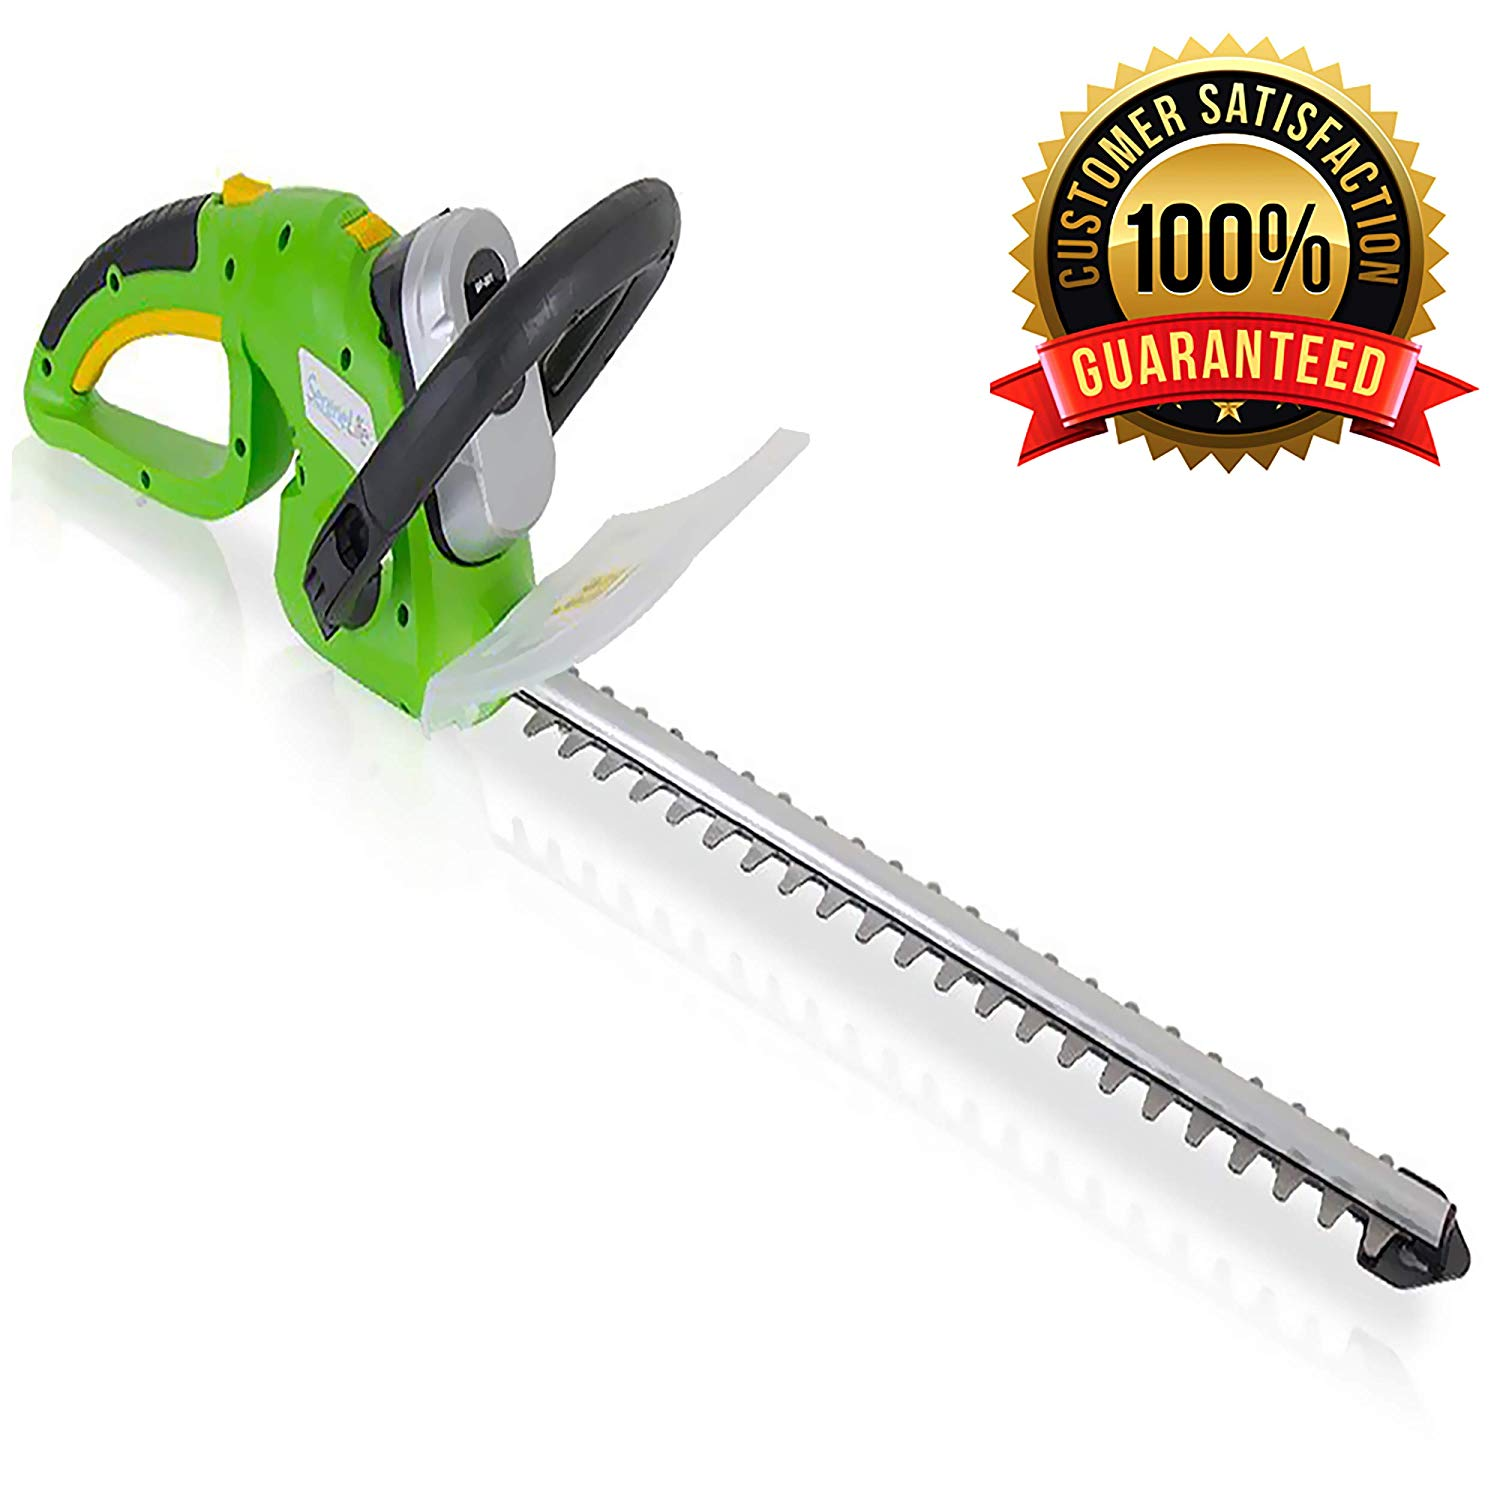 Cordless Electric Hedge Trimmer By Serenelife Relax